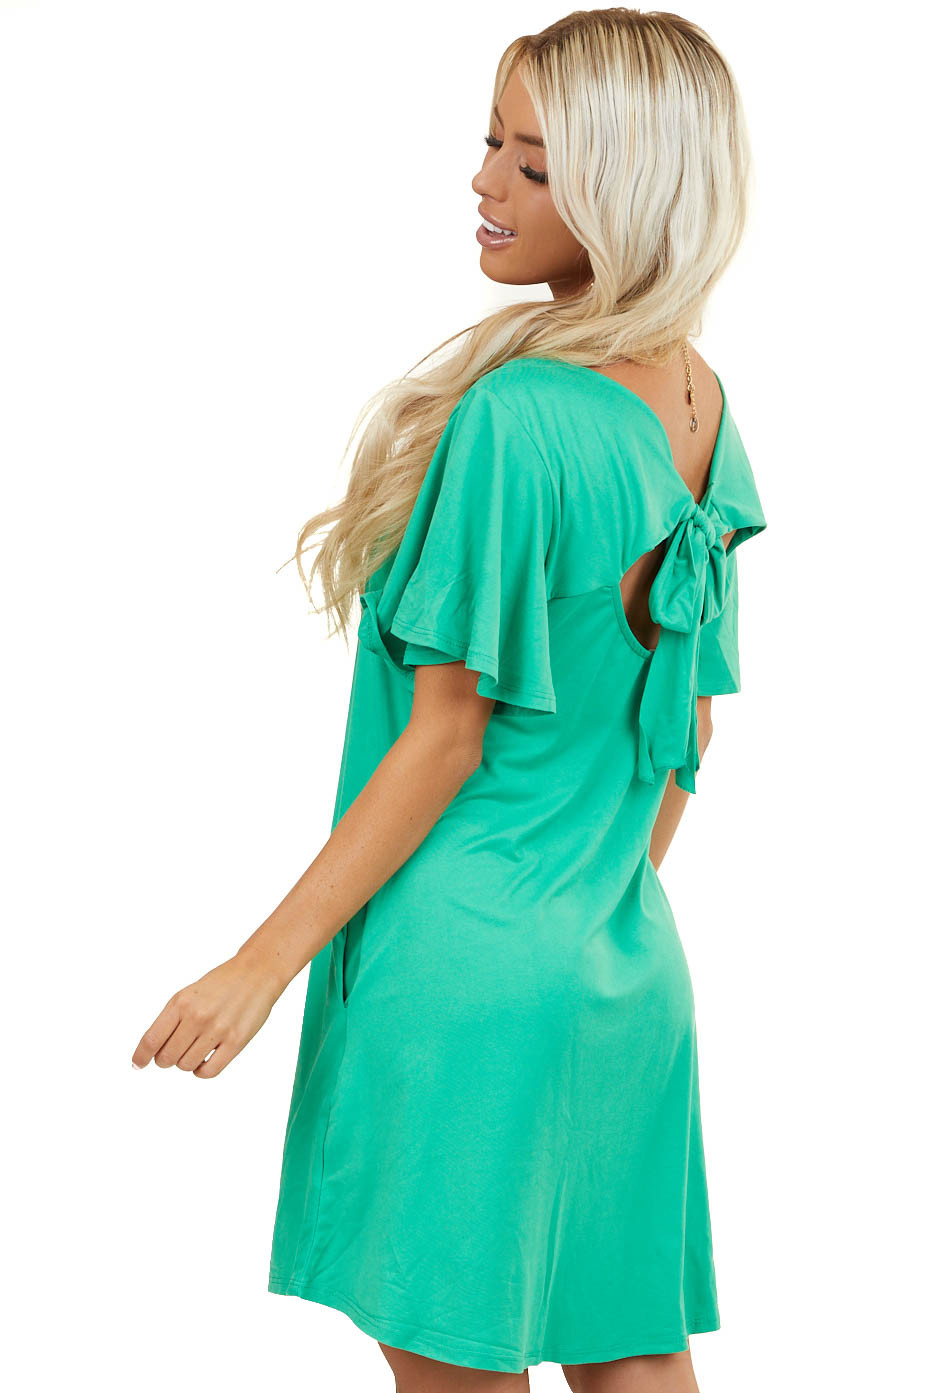 Kelly Green Keyhole Back Dress with Tie Detail and Pockets